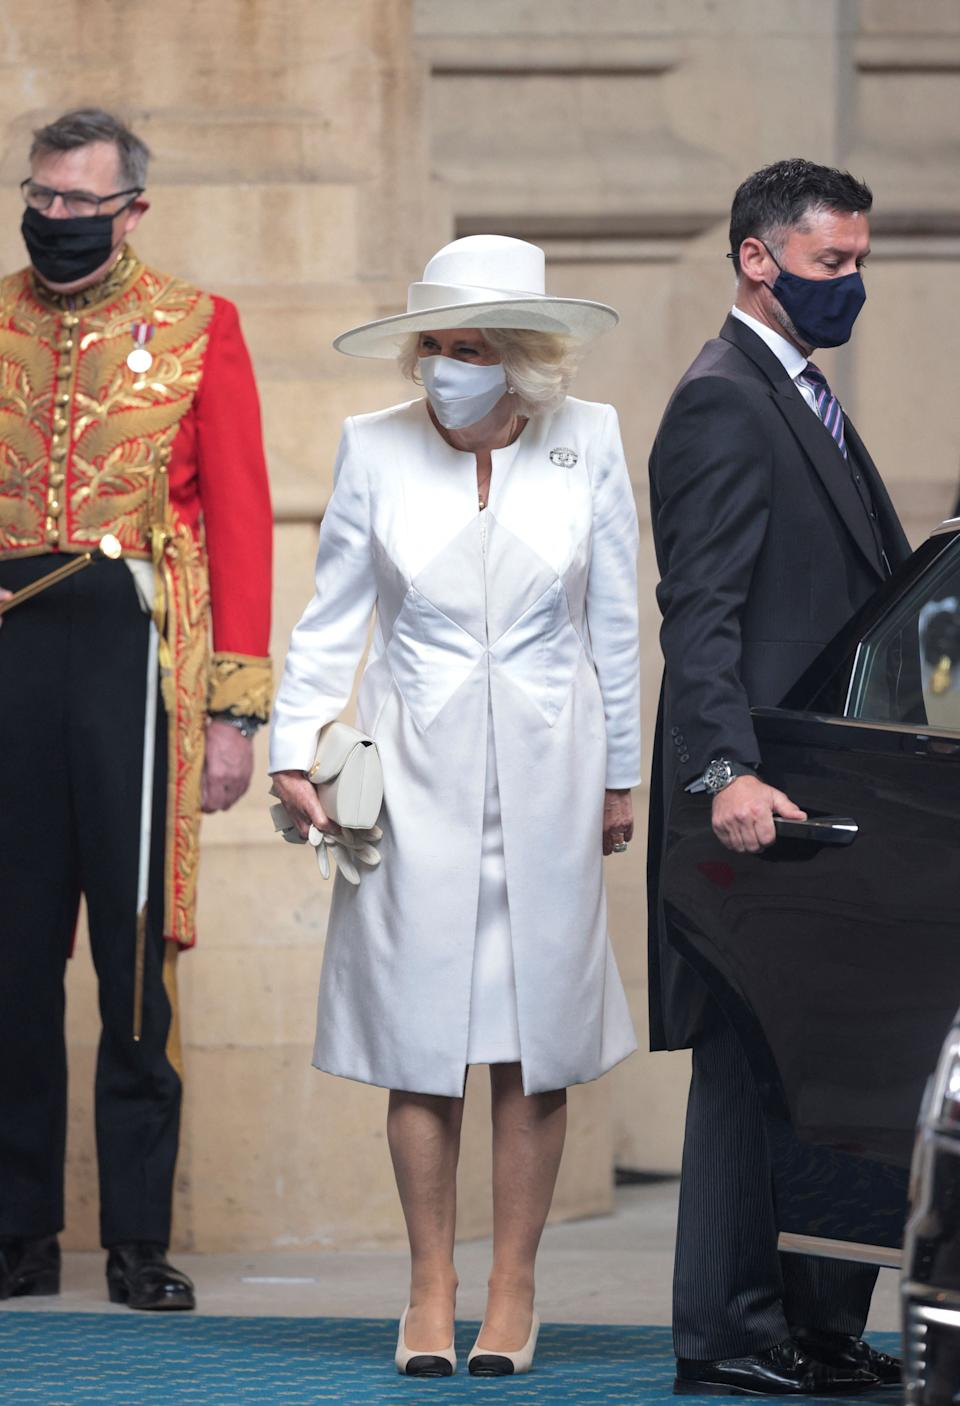 Britain's Camilla, Duchess of Cornwall (C), wearing a face covering,  arrives for the State Opening of Parliament at the Houses of Parliament in London on May 11, 2021, which is taking place with a reduced capacity due to Covid-19 restrictions. - The State Opening of Parliament is where Queen Elizabeth II performs her ceremonial duty of informing parliament about the government's agenda for the coming year in a Queen's Speech. (Photo by HANNAH MCKAY / POOL / AFP) (Photo by HANNAH MCKAY/POOL/AFP via Getty Images)